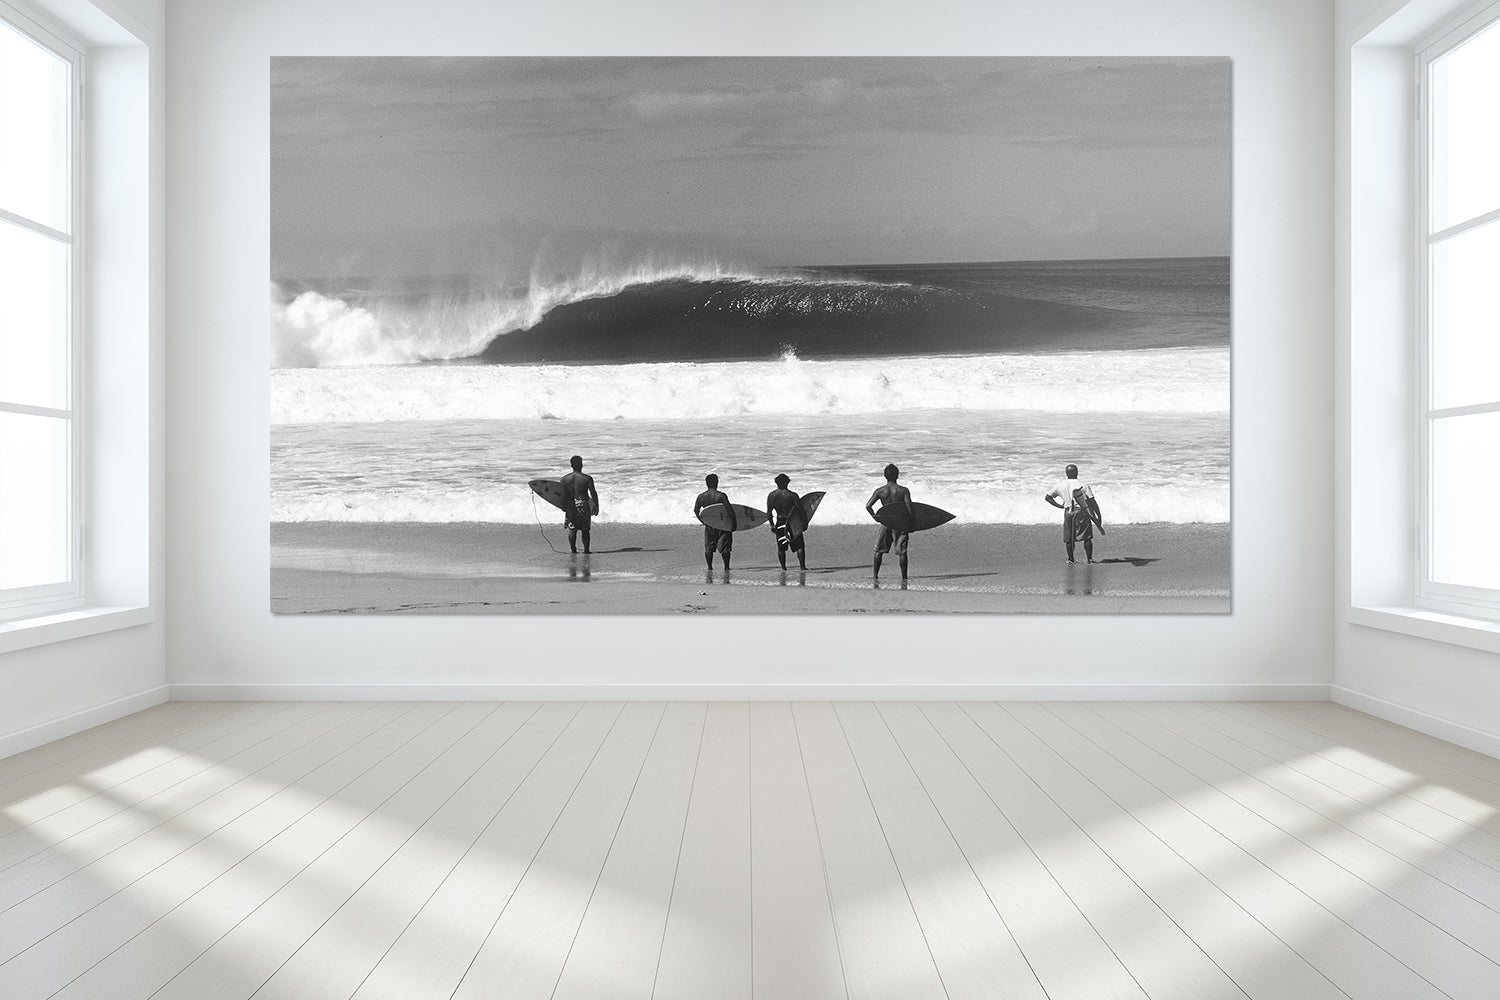 Surfing Wall Murals of a photo from the surf spot Pipeline on the North Shore of Oahu in Hawaii titled Standing Room Only.